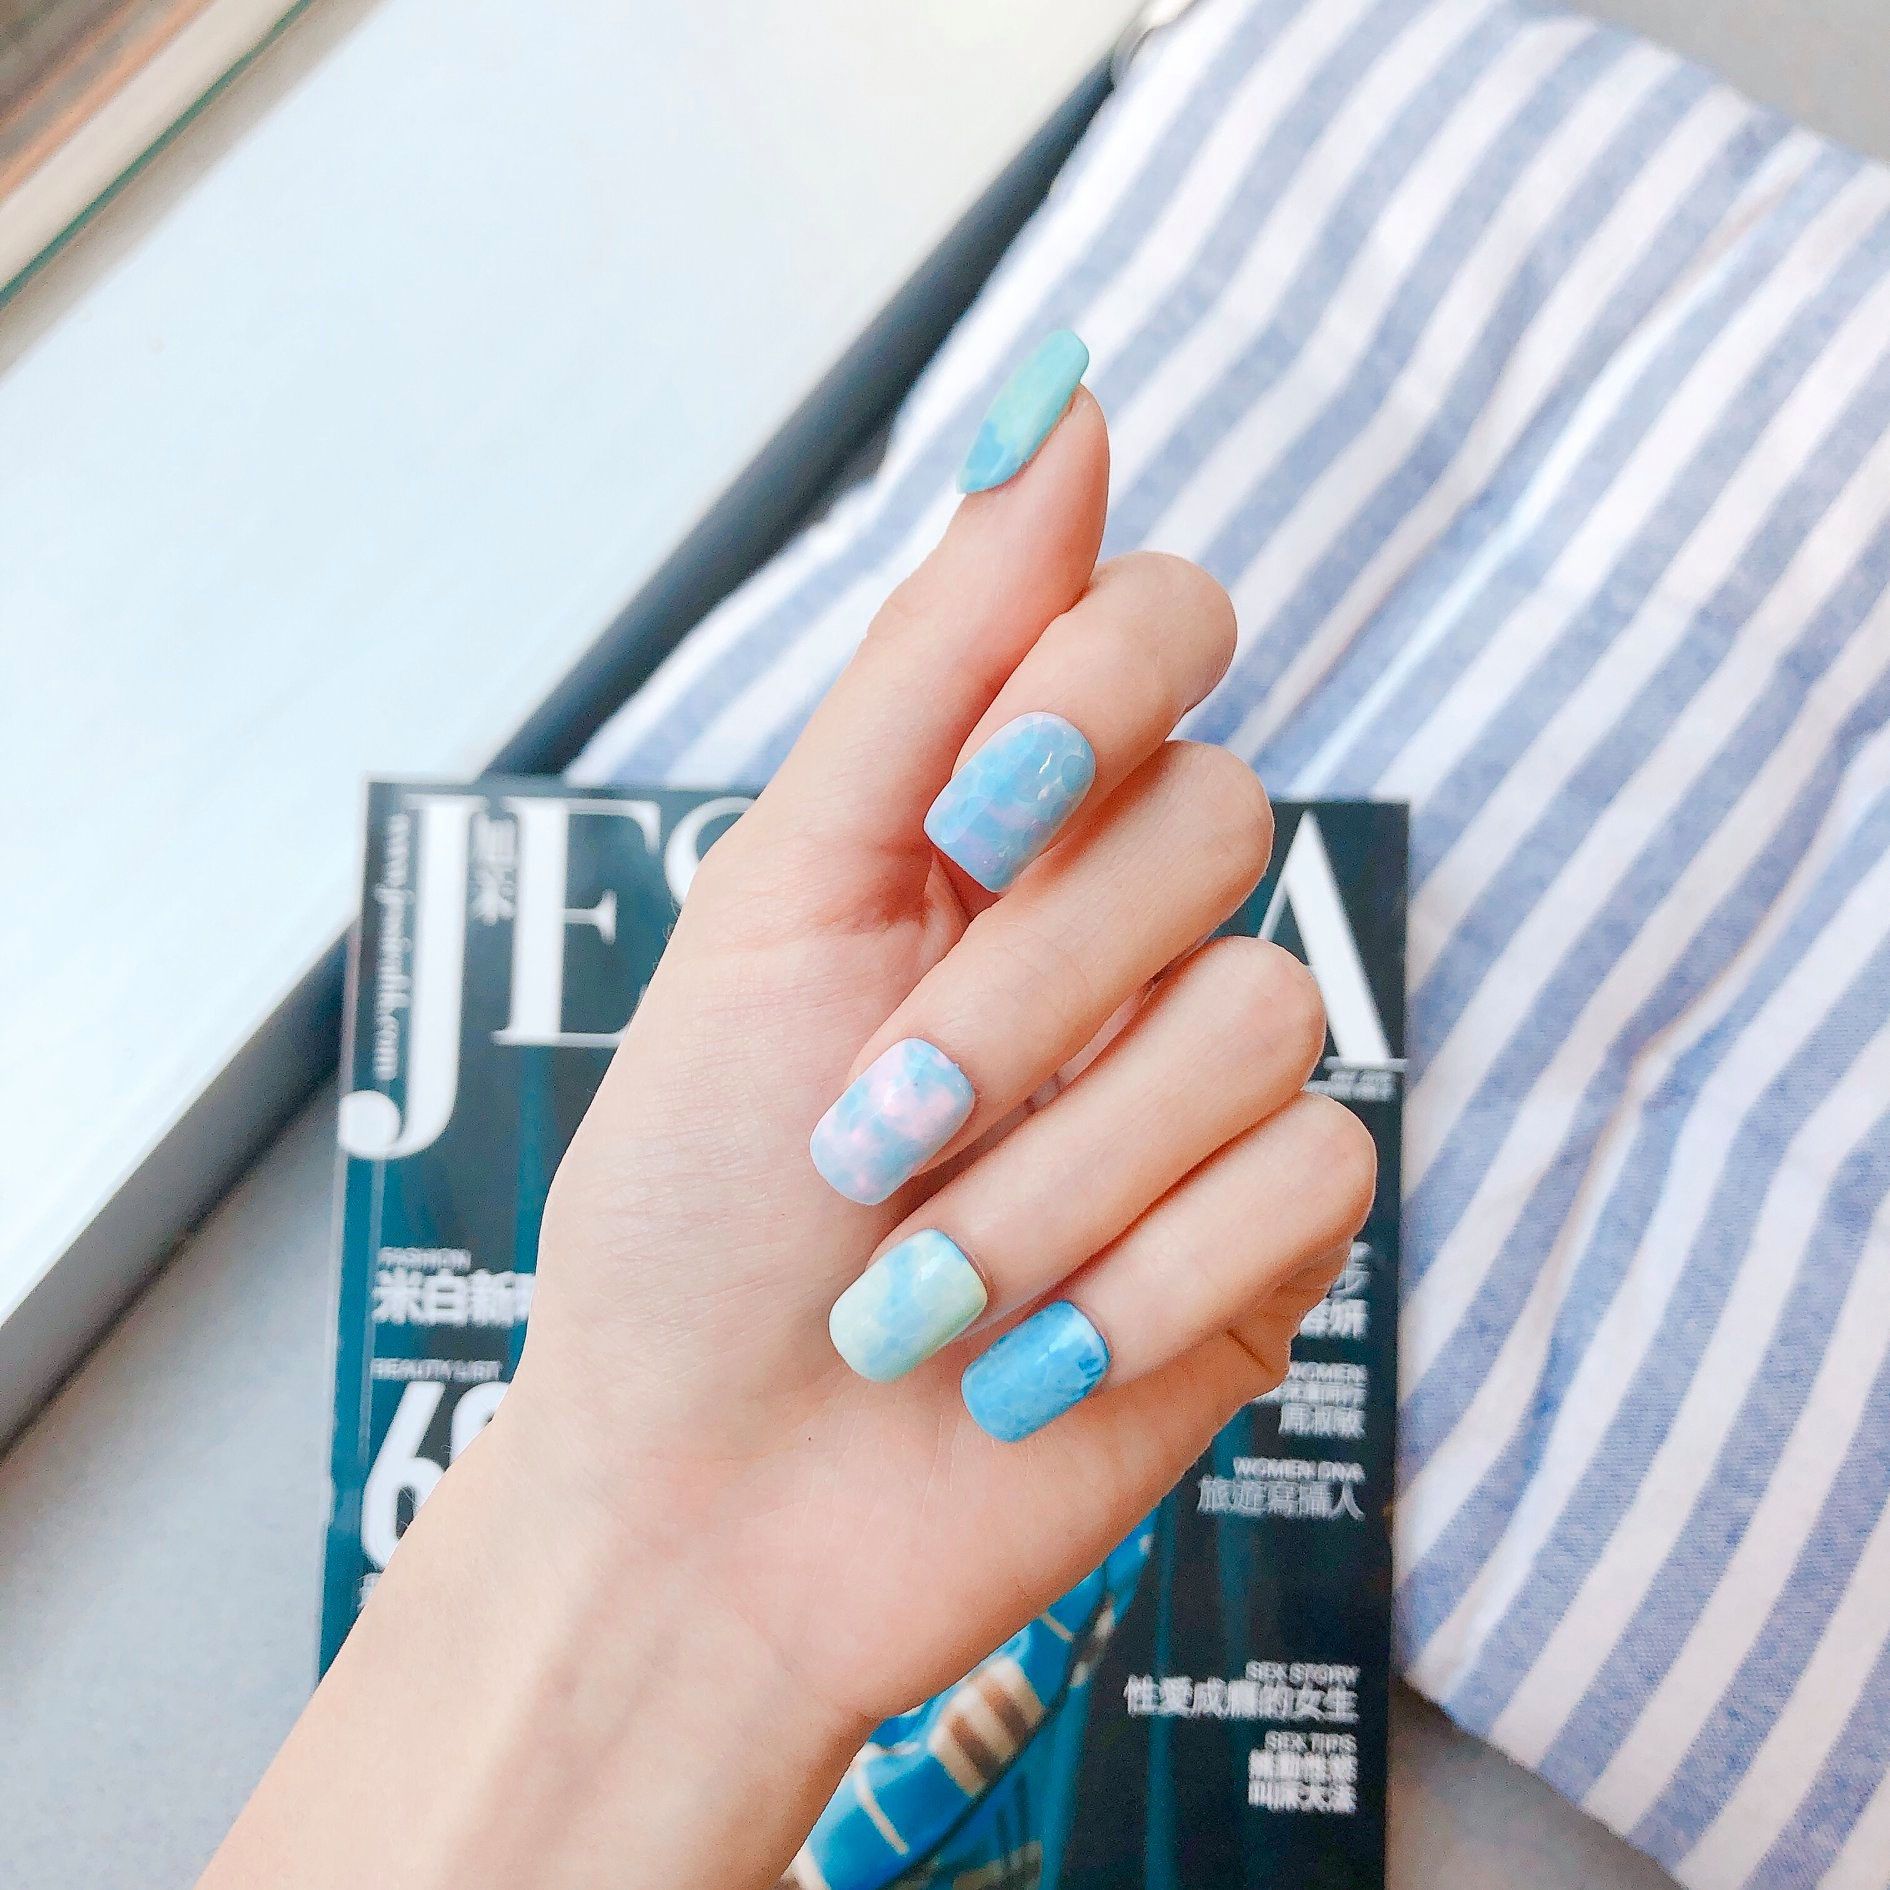 〈nailnail.creation〉 Got my nails ready for summer! It's pool time!